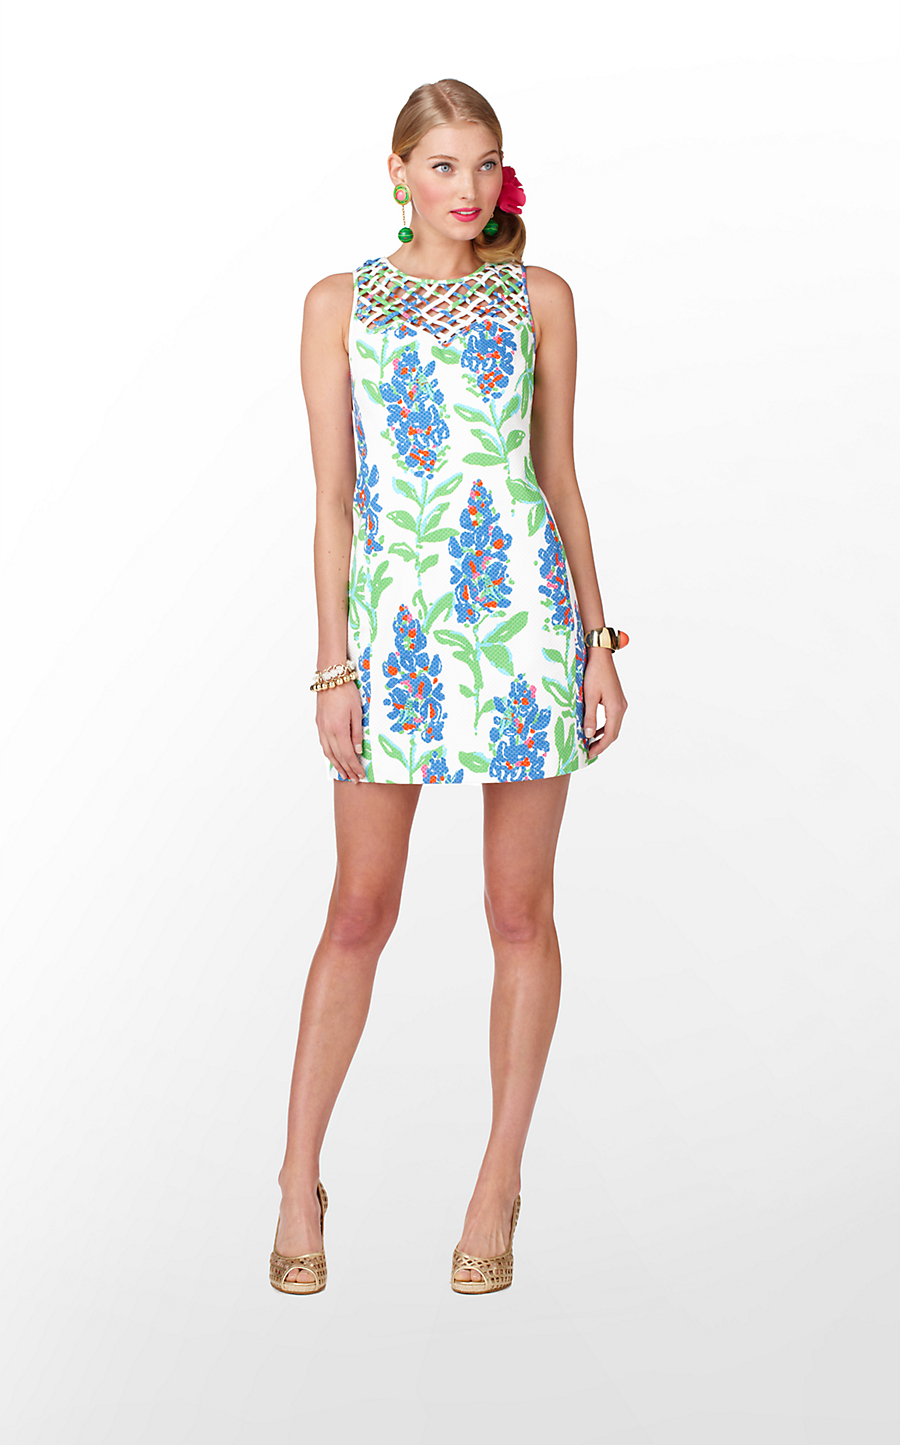 Lilly Pulitzer Funeral Outfit Idea The Luxury Spot